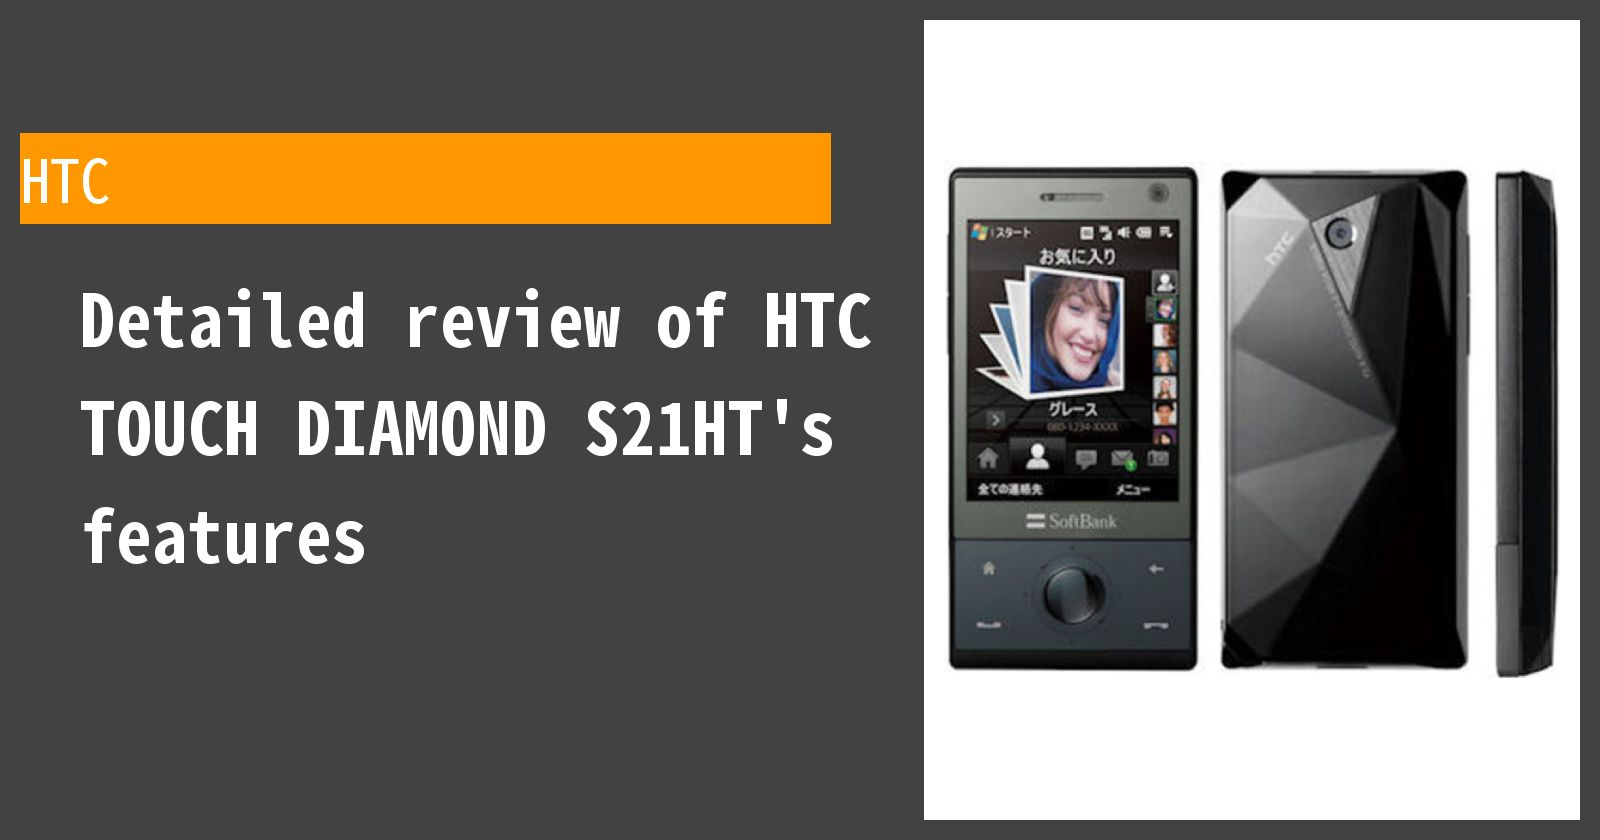 Detailed review of Touch Diamond S21HT ー「's features